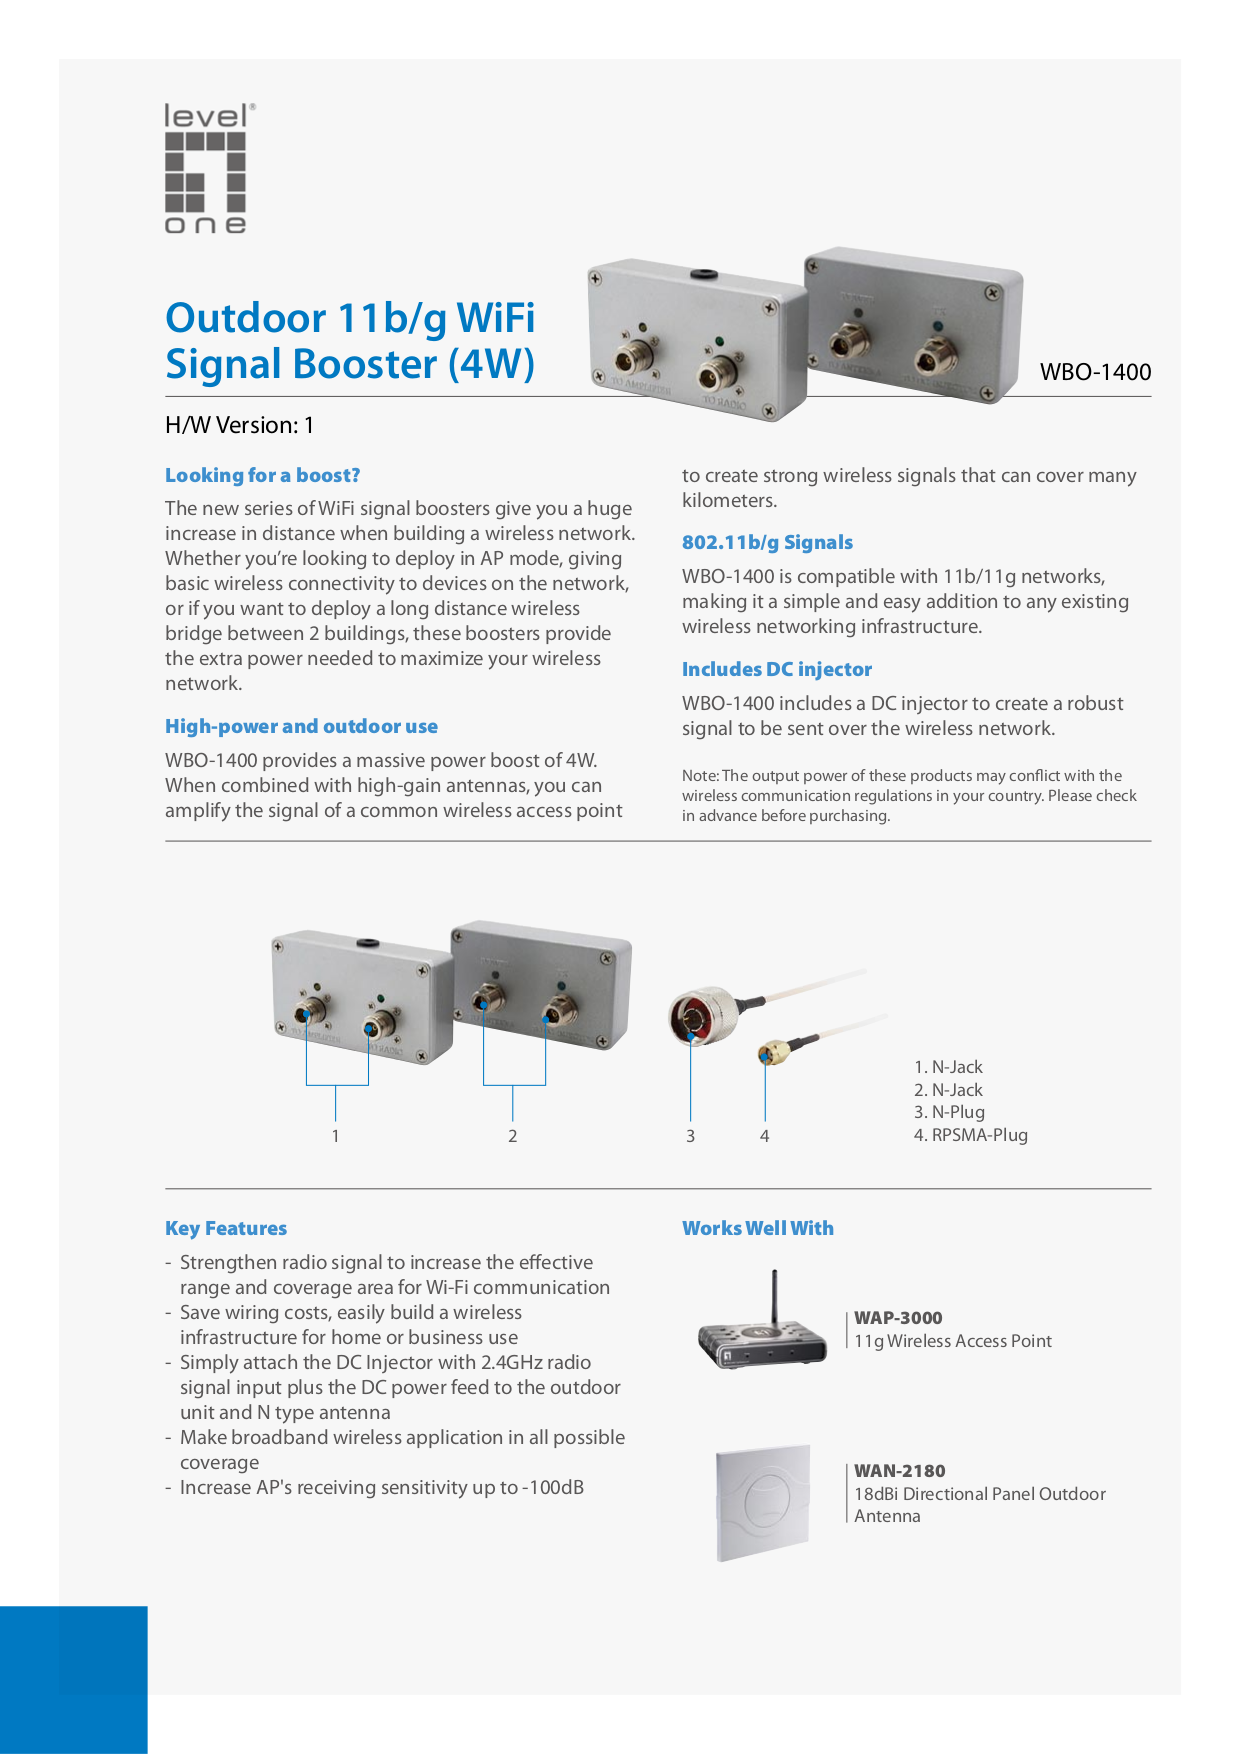 pdf for LevelOne Other WBO-1400 WiFi Signal Boosters manual